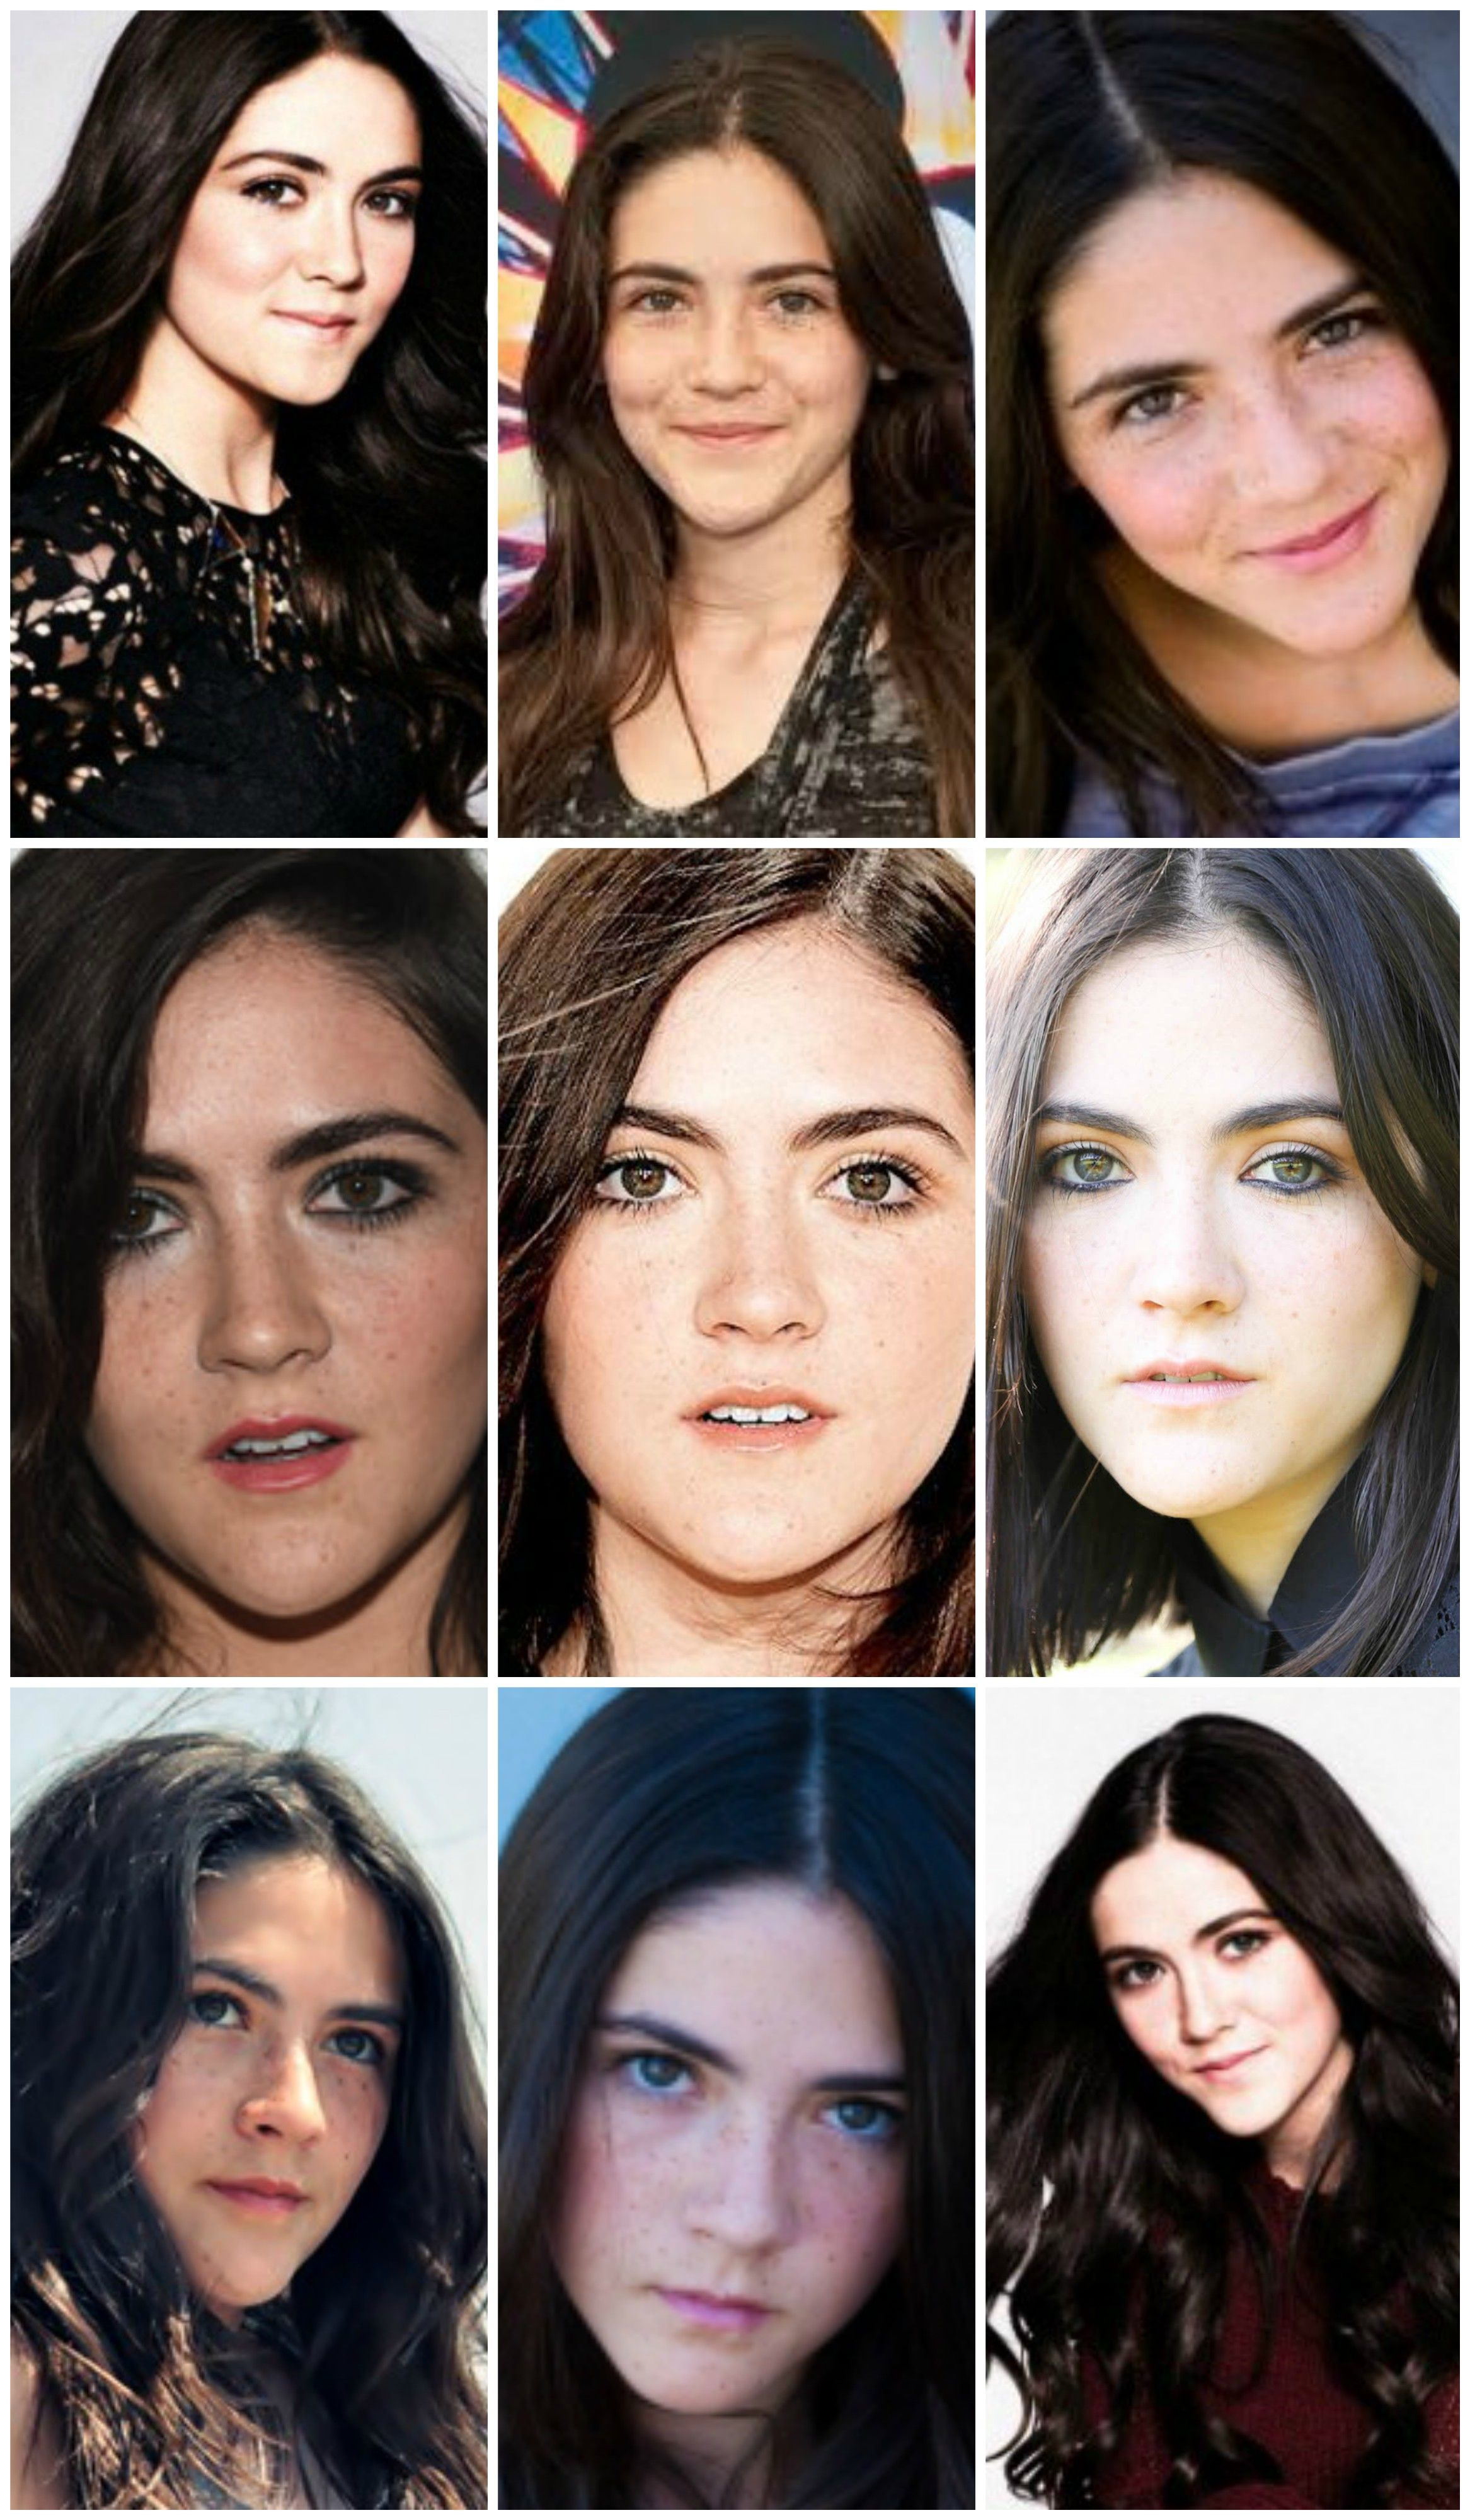 Another custom made Isabelle Fuhrman collage! | Clove ...